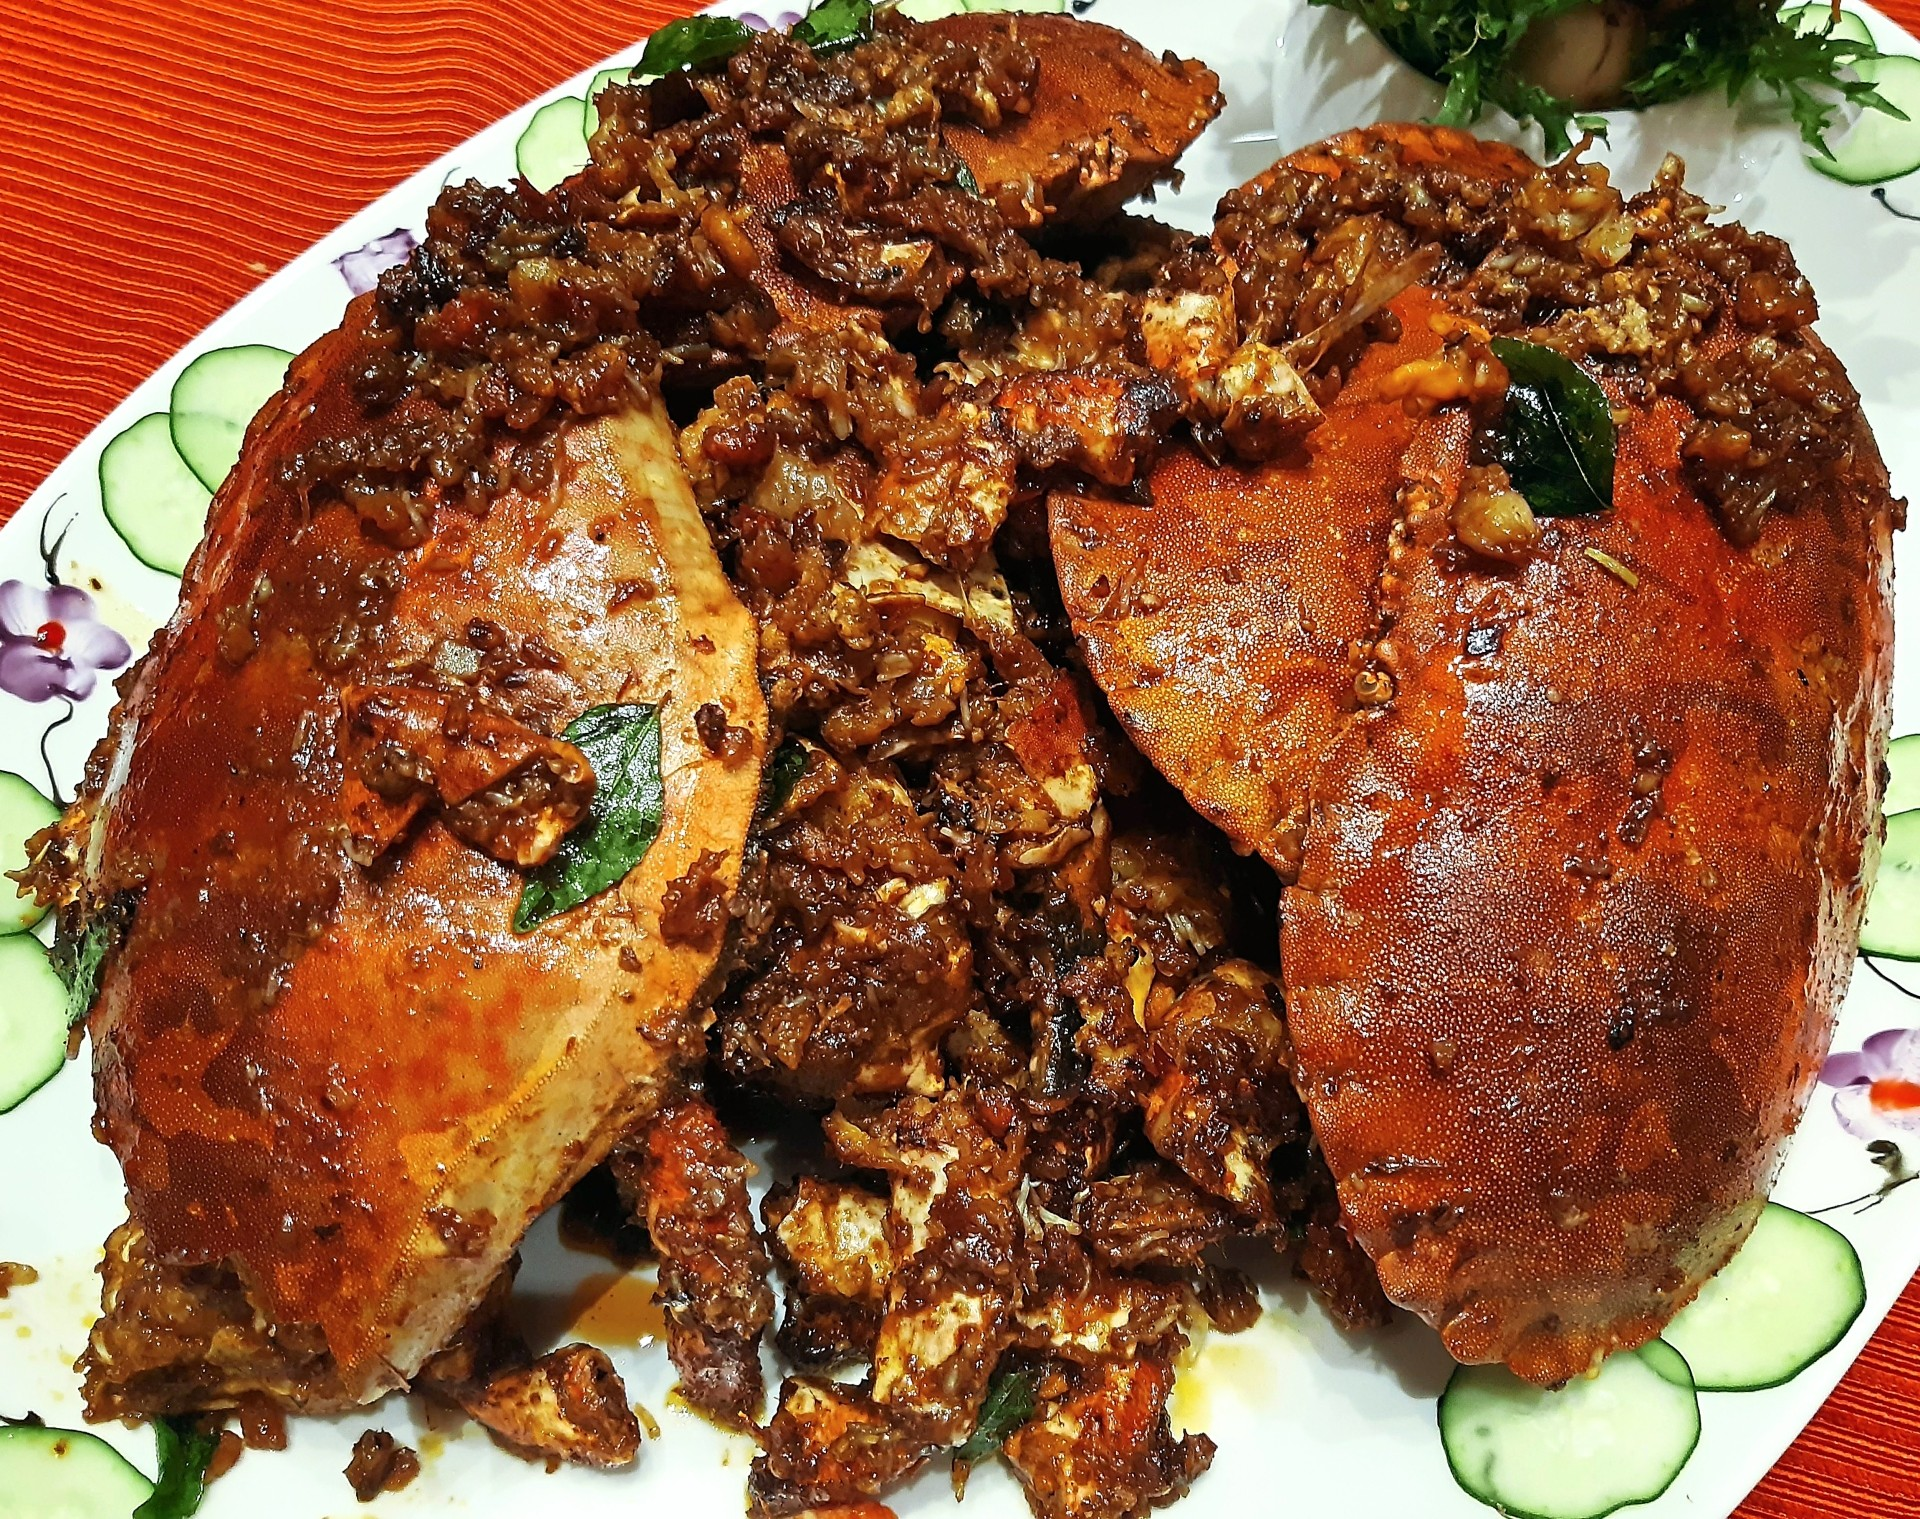 French crabs prepared in creamy in kam heong style can be relished with or without rice. — Photos: CHAN TAK KONG/The Star